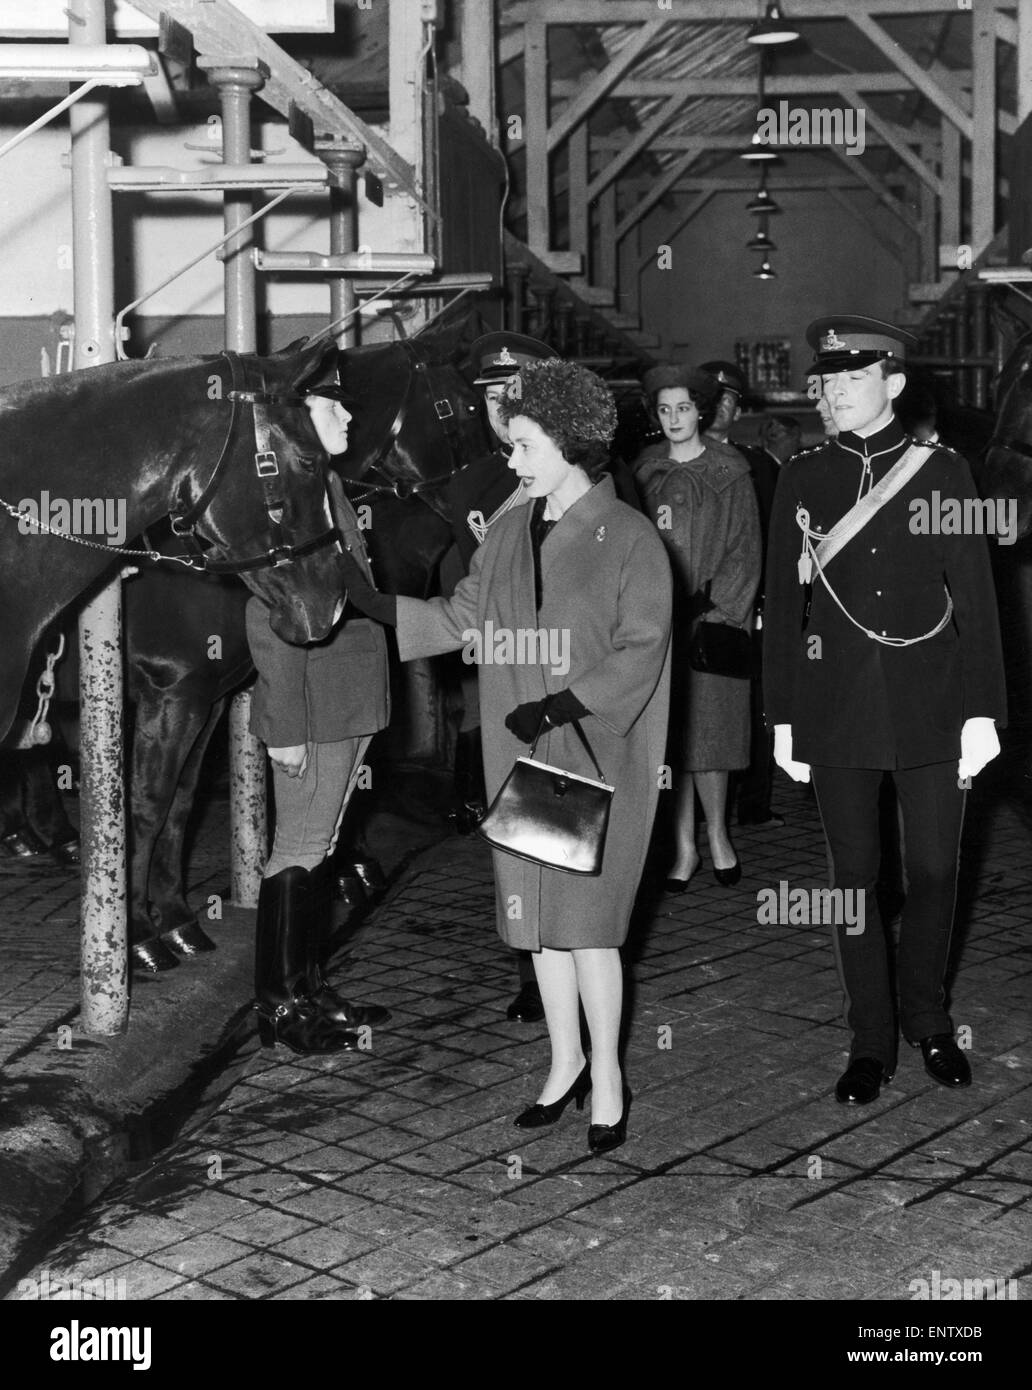 The Queen visiting The King's Troop Royal Horse Artillery at St John's Wood. 15th November 1962. - Stock Image